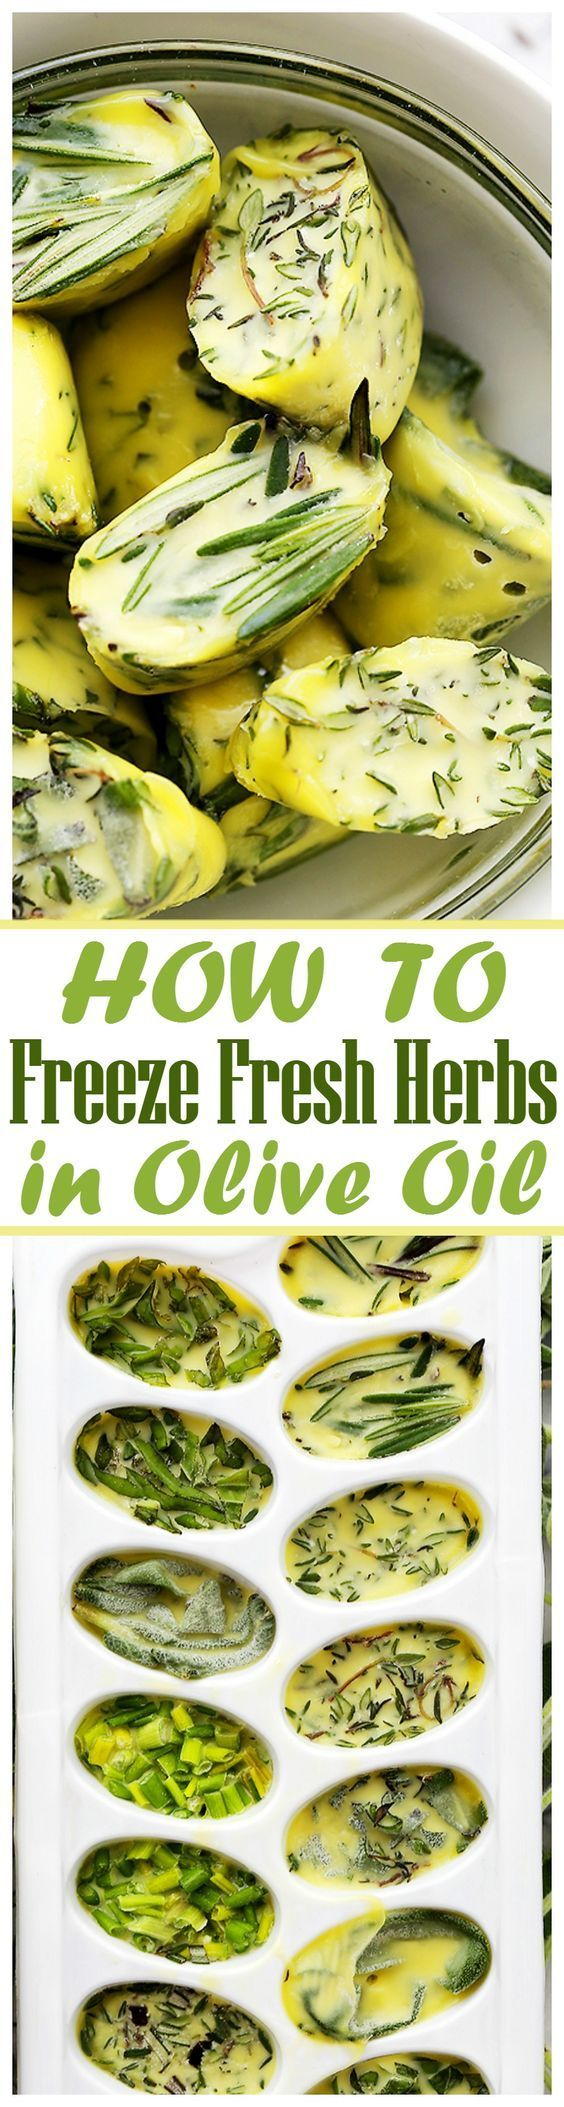 how to freeze fresh herbs in olive oil recipe freezing